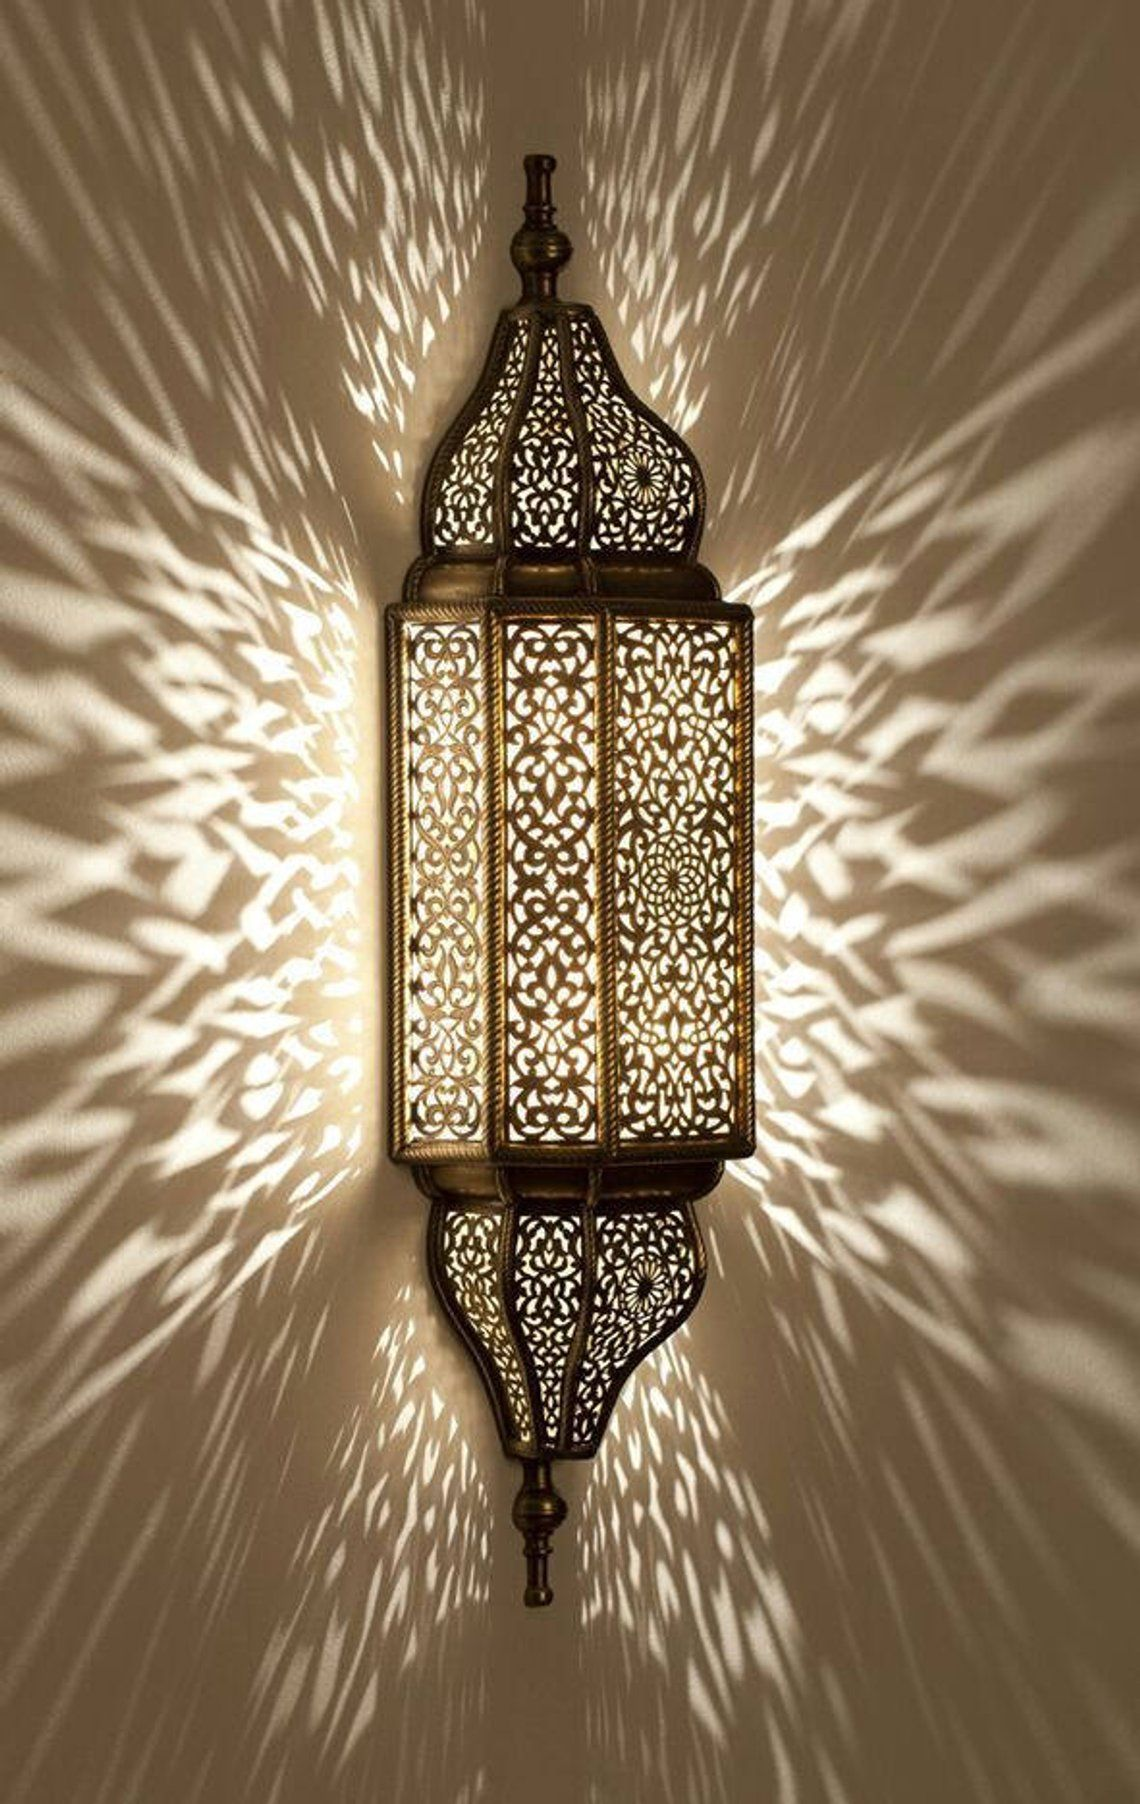 Moroccan Lamp Moroccan Sconce Wall Sconce Traditionel Sconce Sconce Light Wall Lamp Copper Sconce Moroccan Mosaic Lighting Indoor Wall Sconces Sconces Indoor Moroccan Lamp